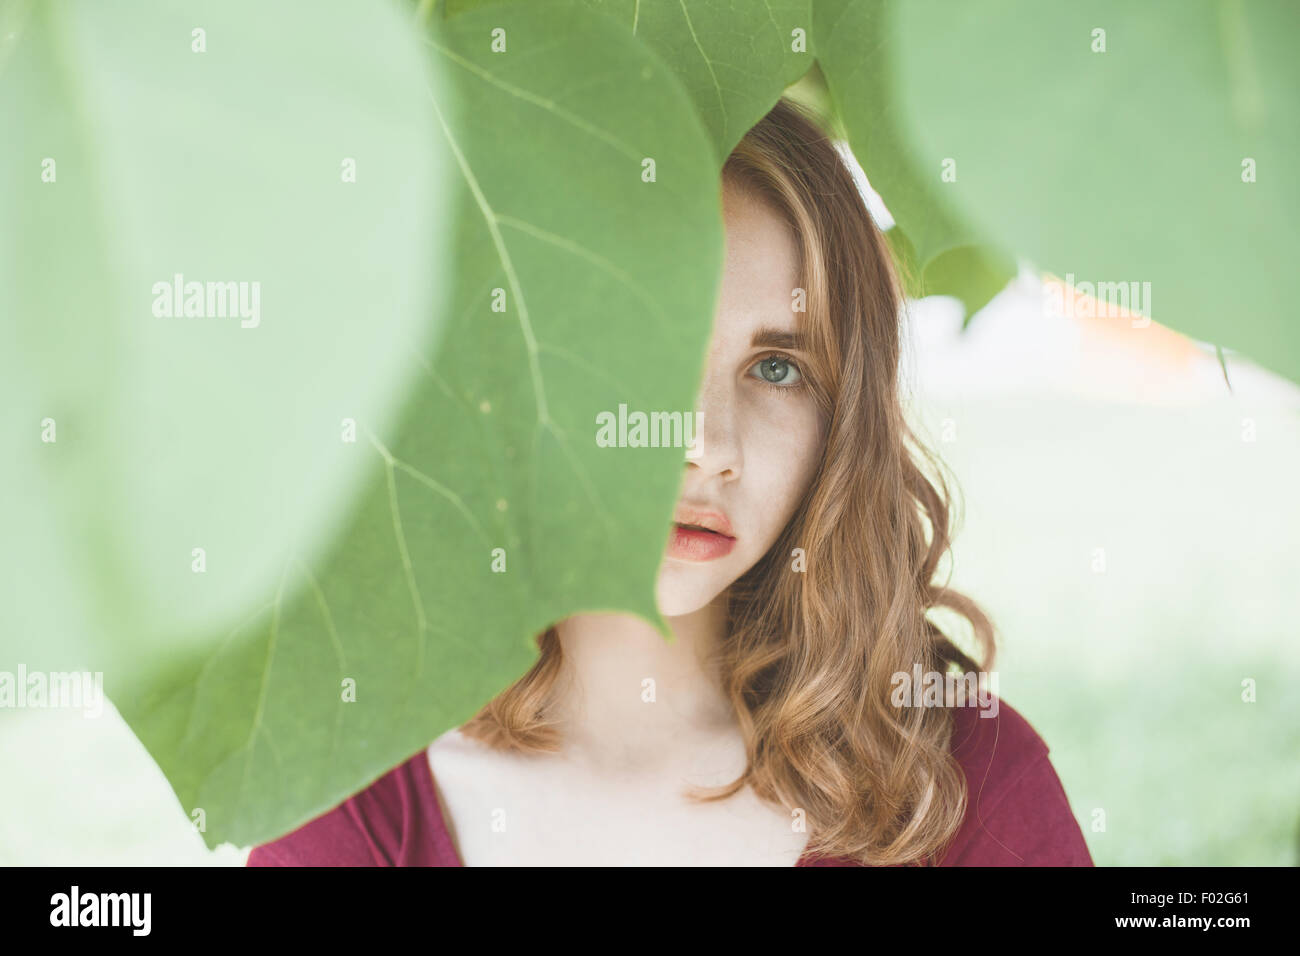 Portrait of a young woman with face obscured by leaves - Stock Image